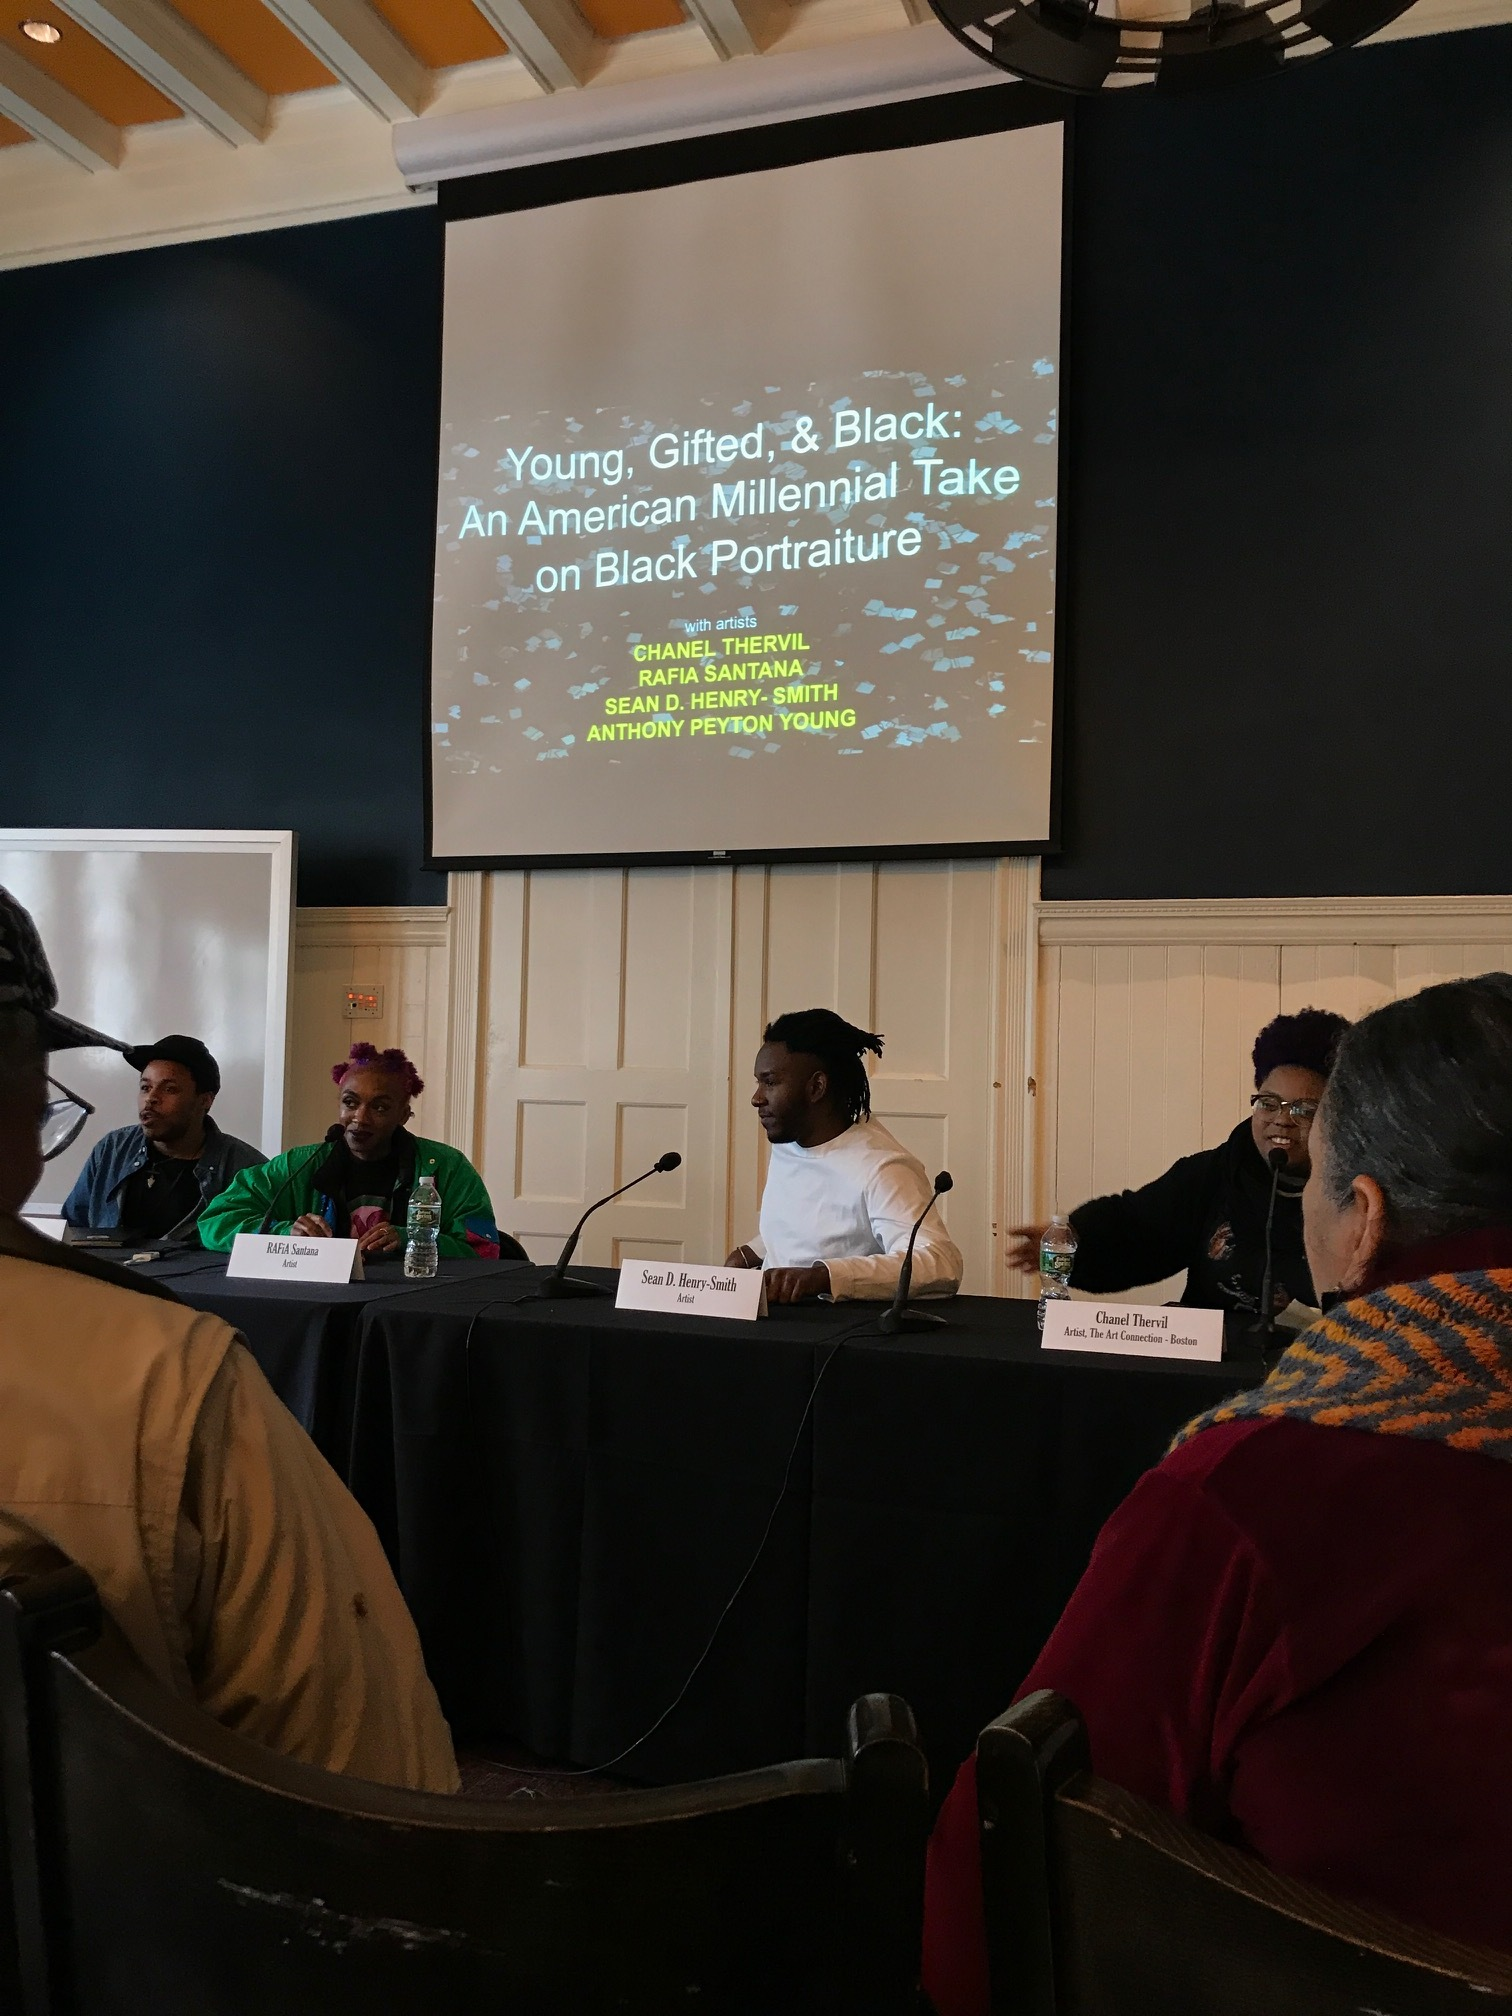 Presentation ready at the Black Portraitures Conference at Harvard University.